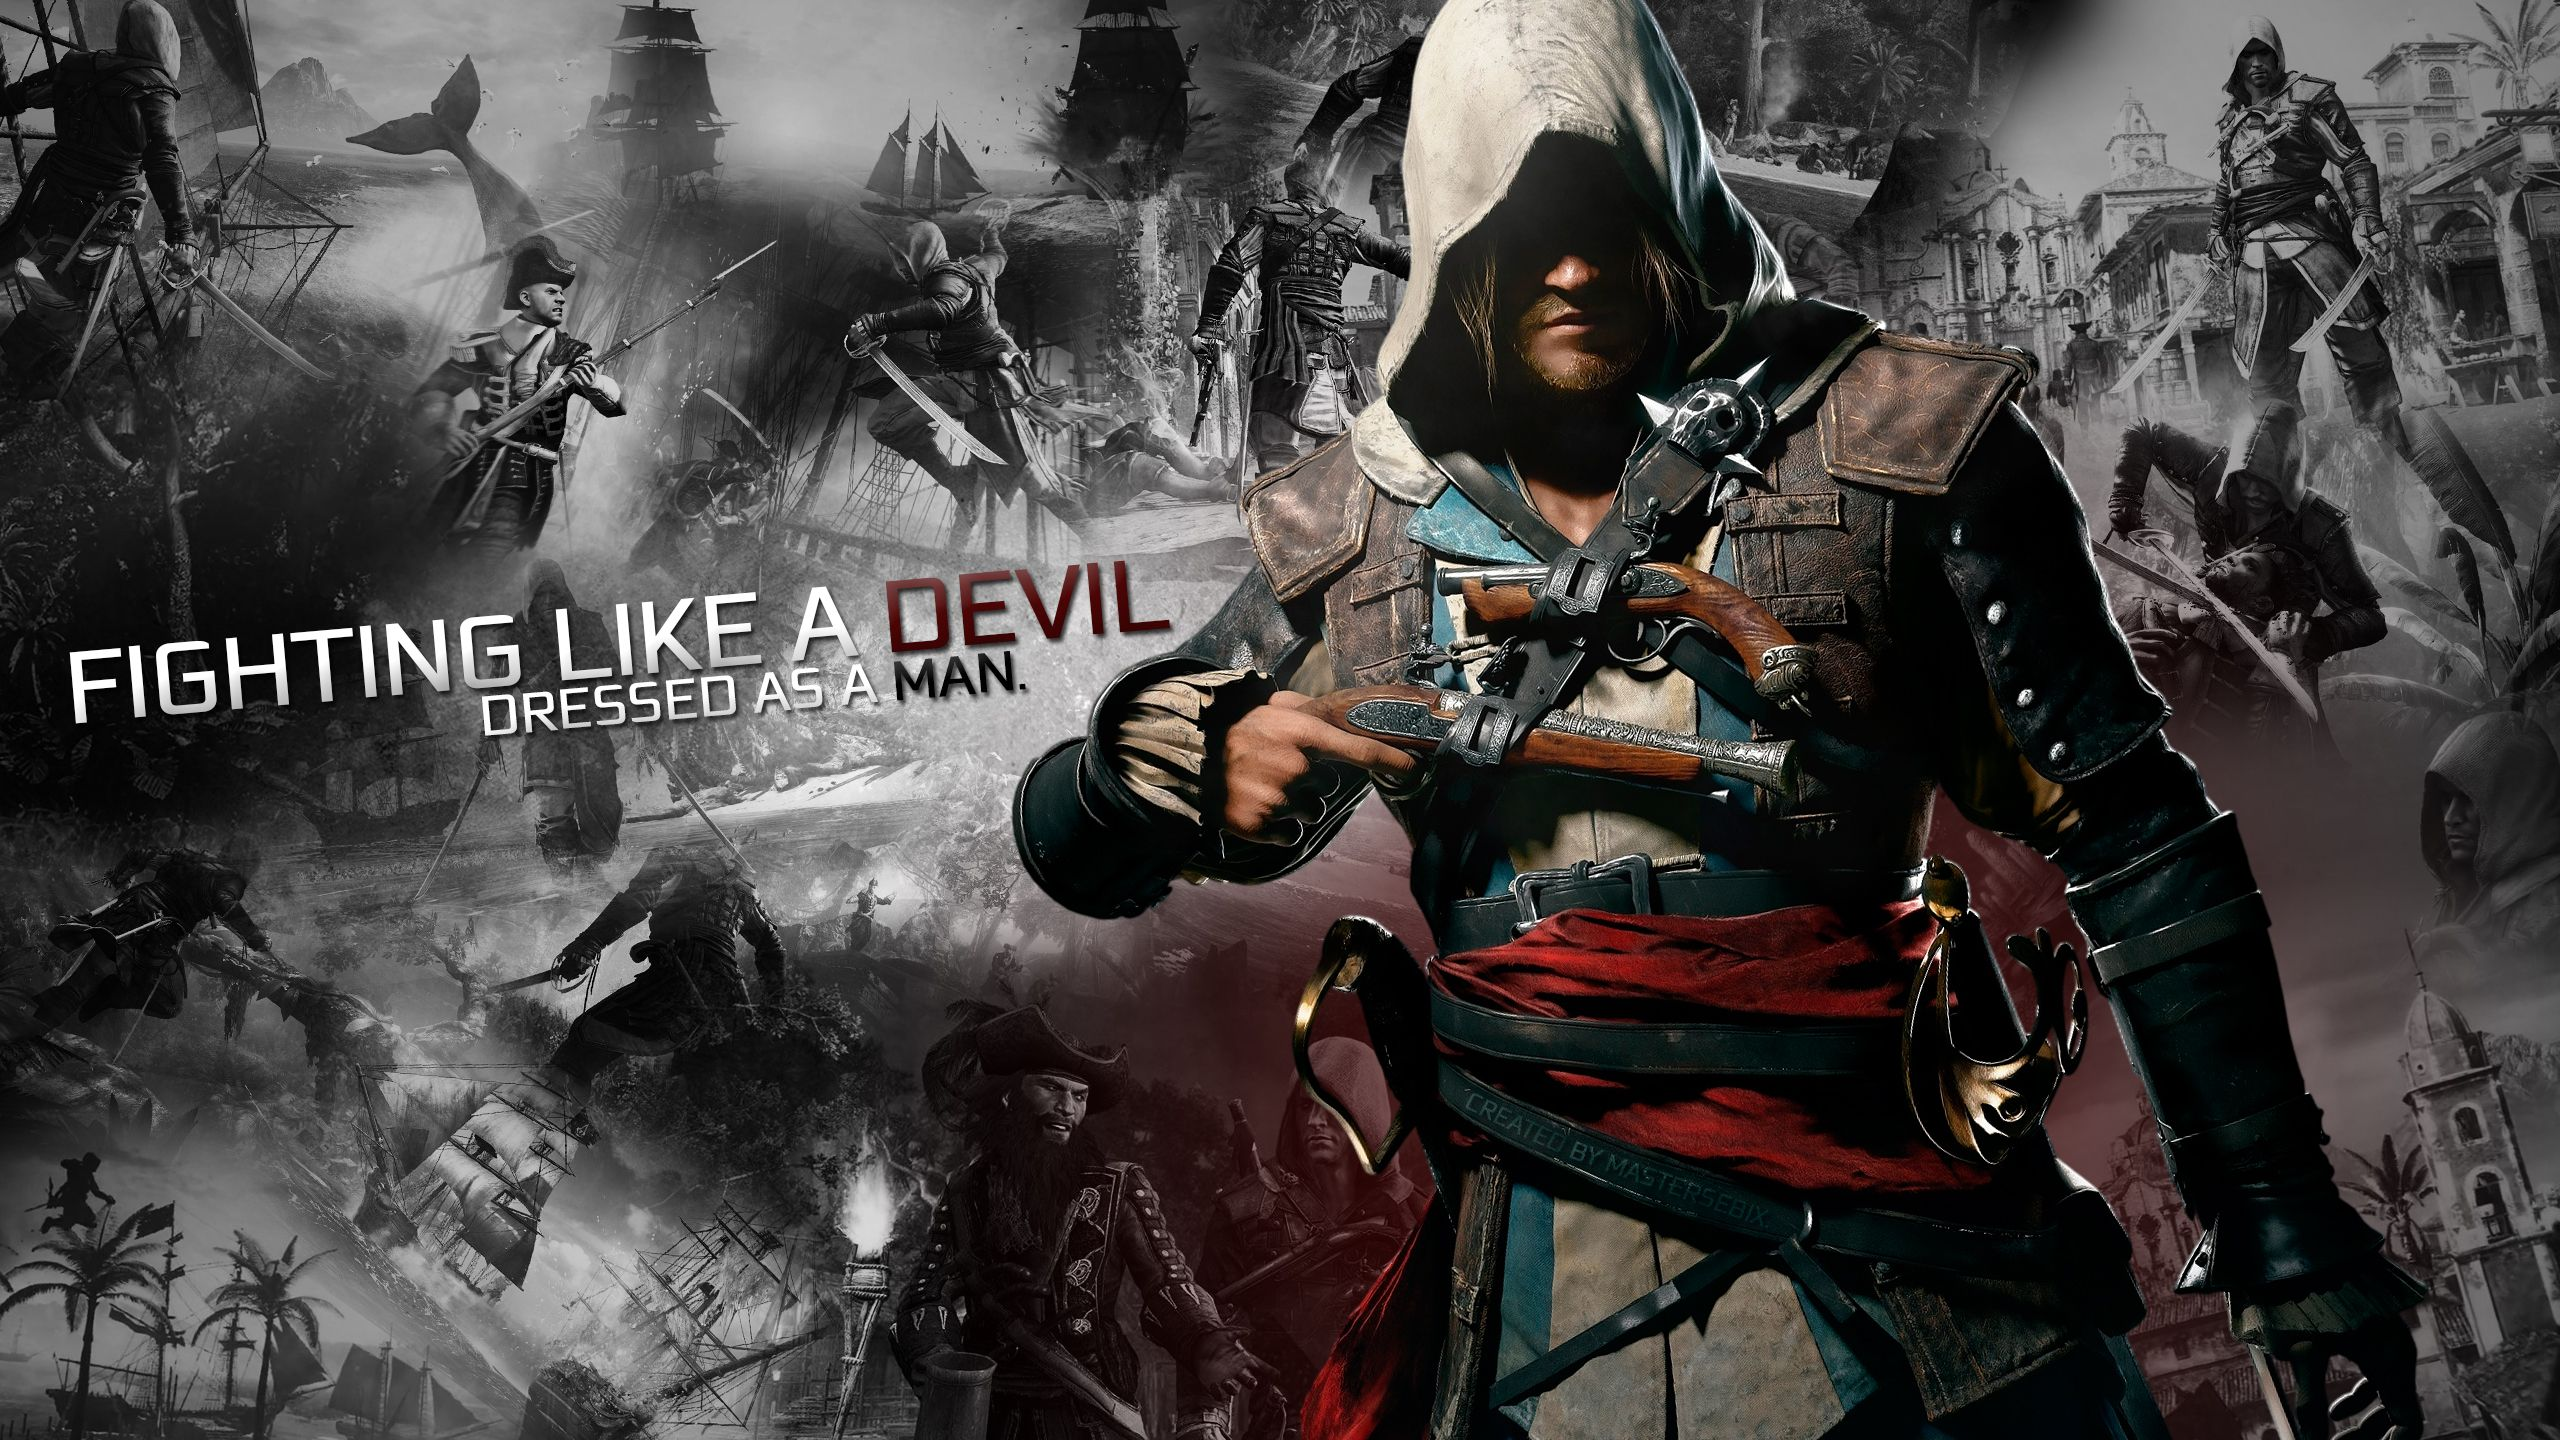 Character Assassins Creed 4 Black Flag Fighting Like a